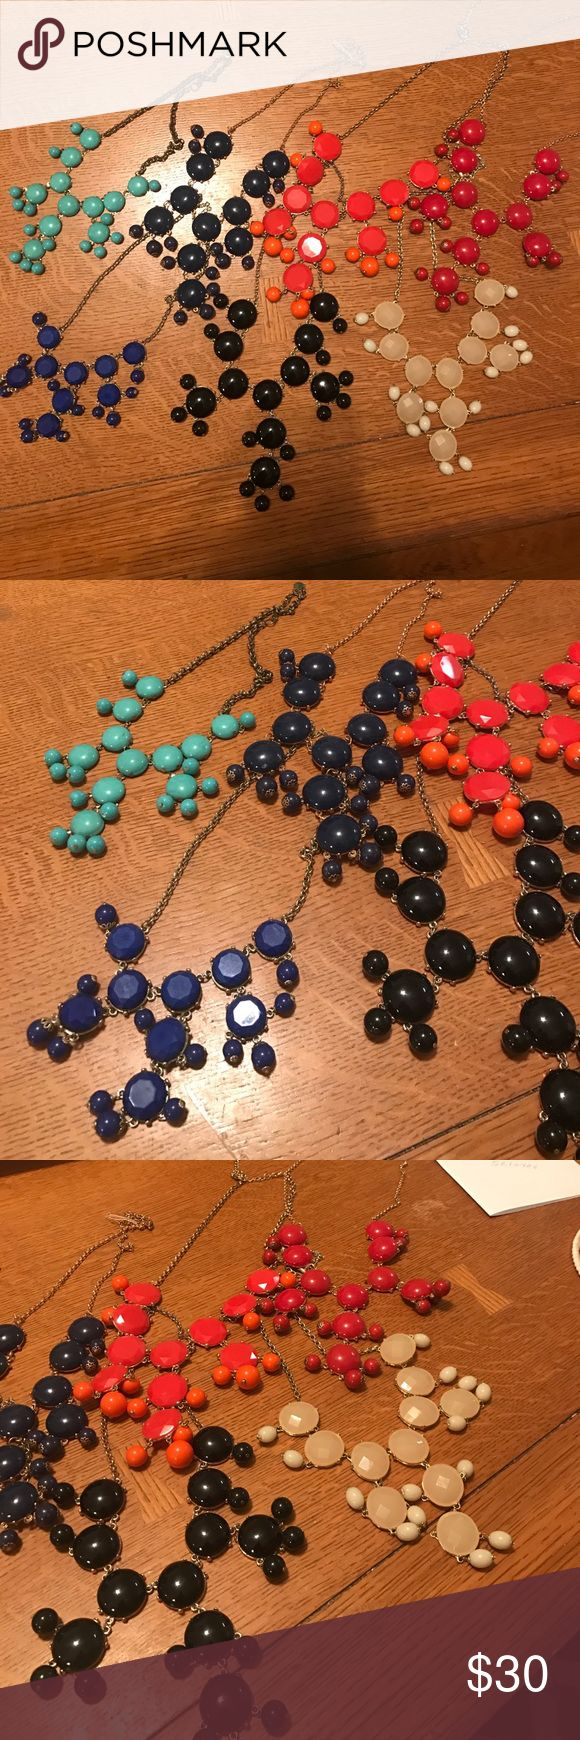 Bubble necklace bundle Have you ever wanted a bubble necklace in every color!? Well here's your chance! There's red, coral, black, navy blue, turquoise, royal blue, and a cream/white! All in beautiful condition! Charming Charlie Jewelry Necklaces